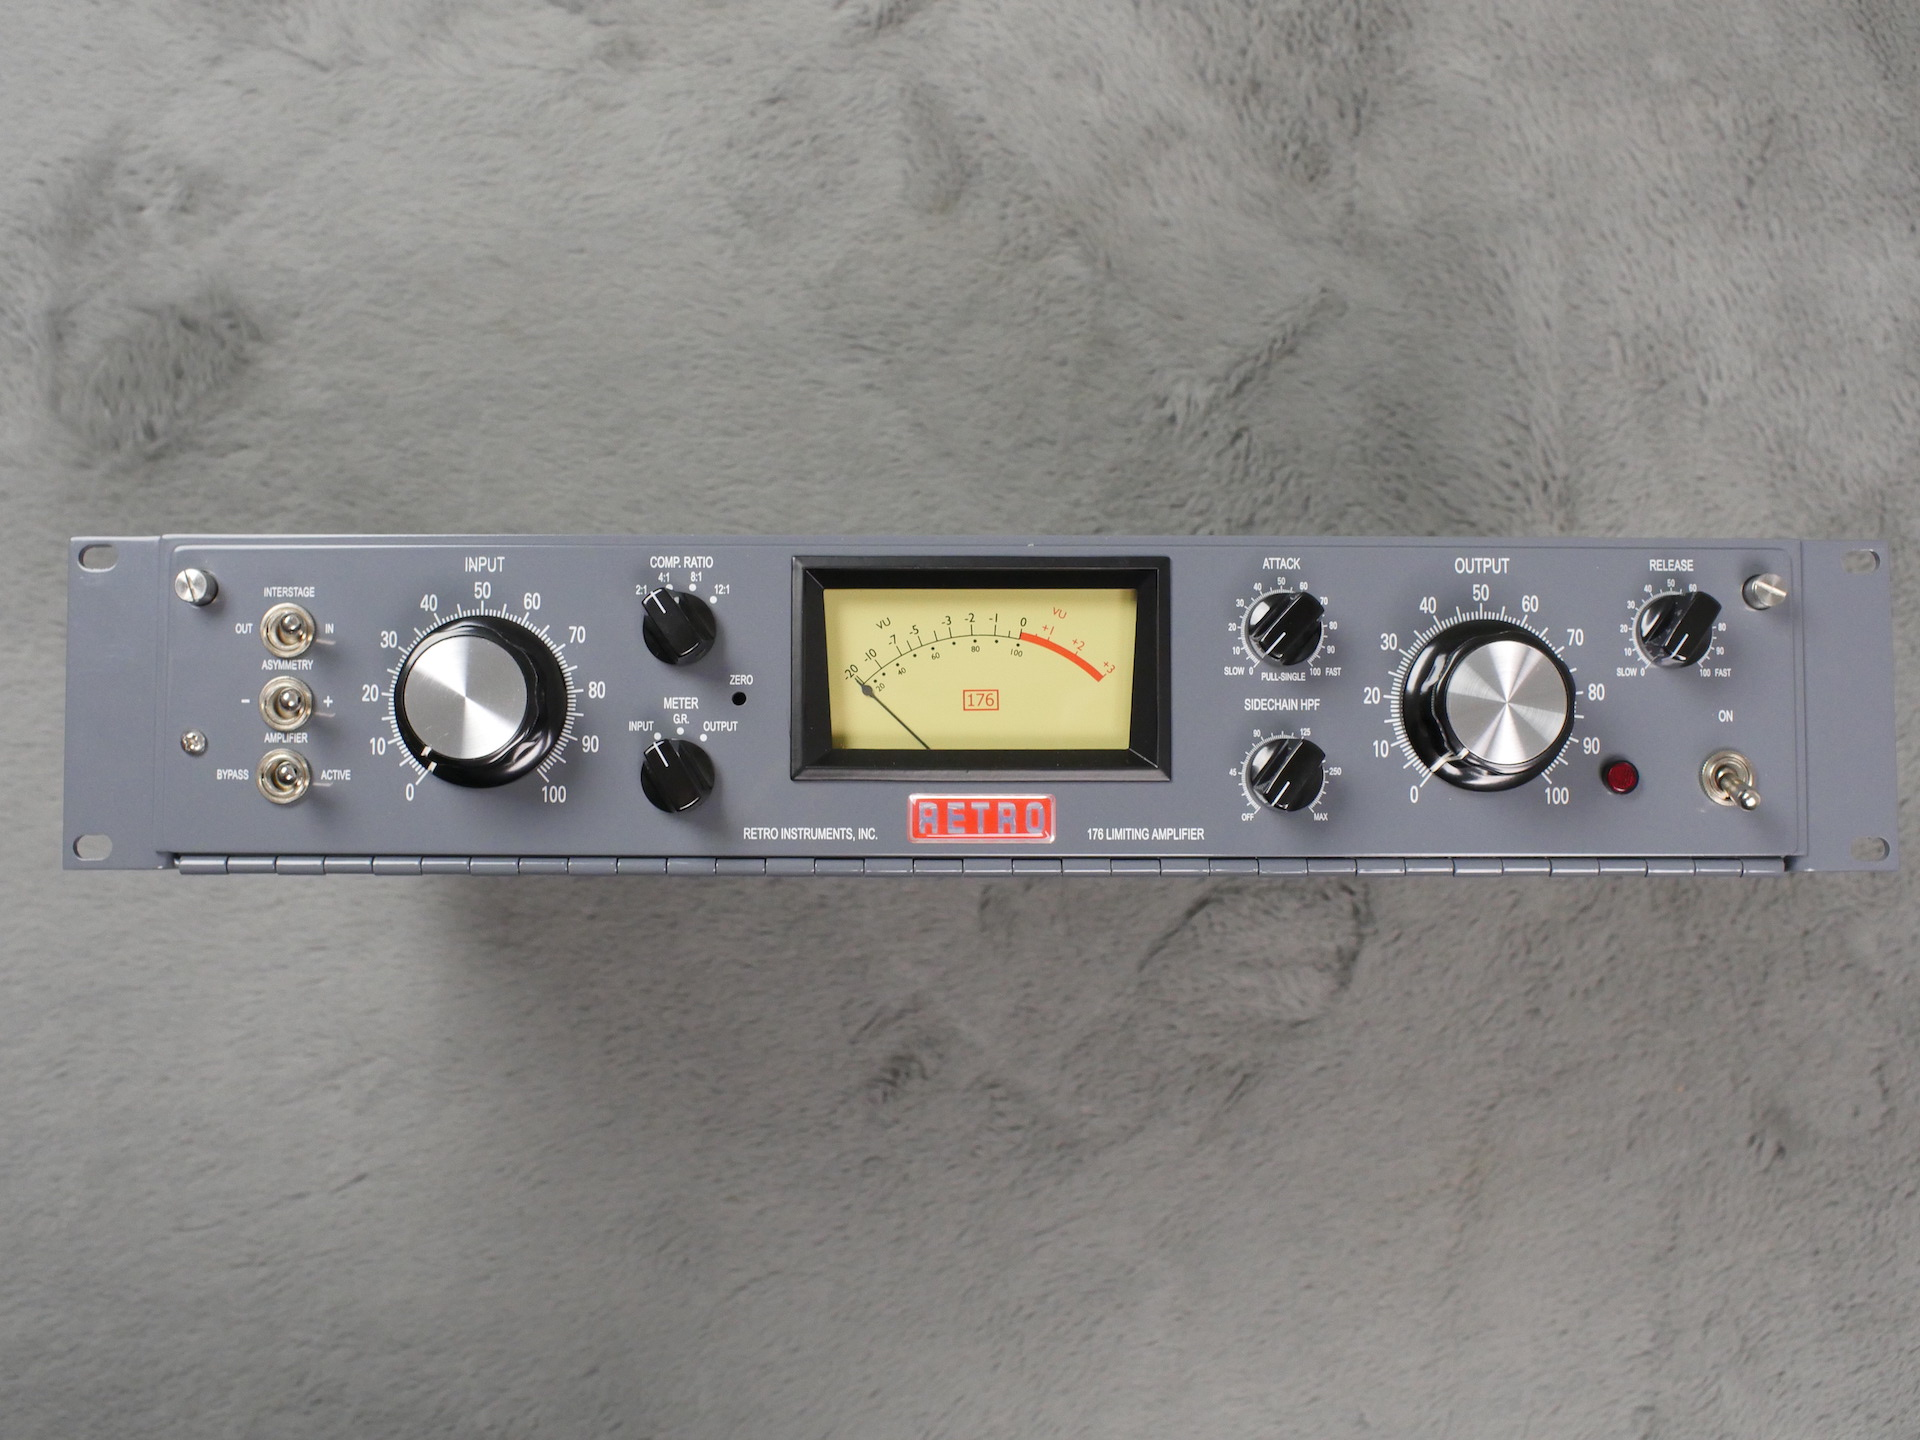 Retro Instruments 176 compressor limiter S/N 1210 - MINT and Boxed!